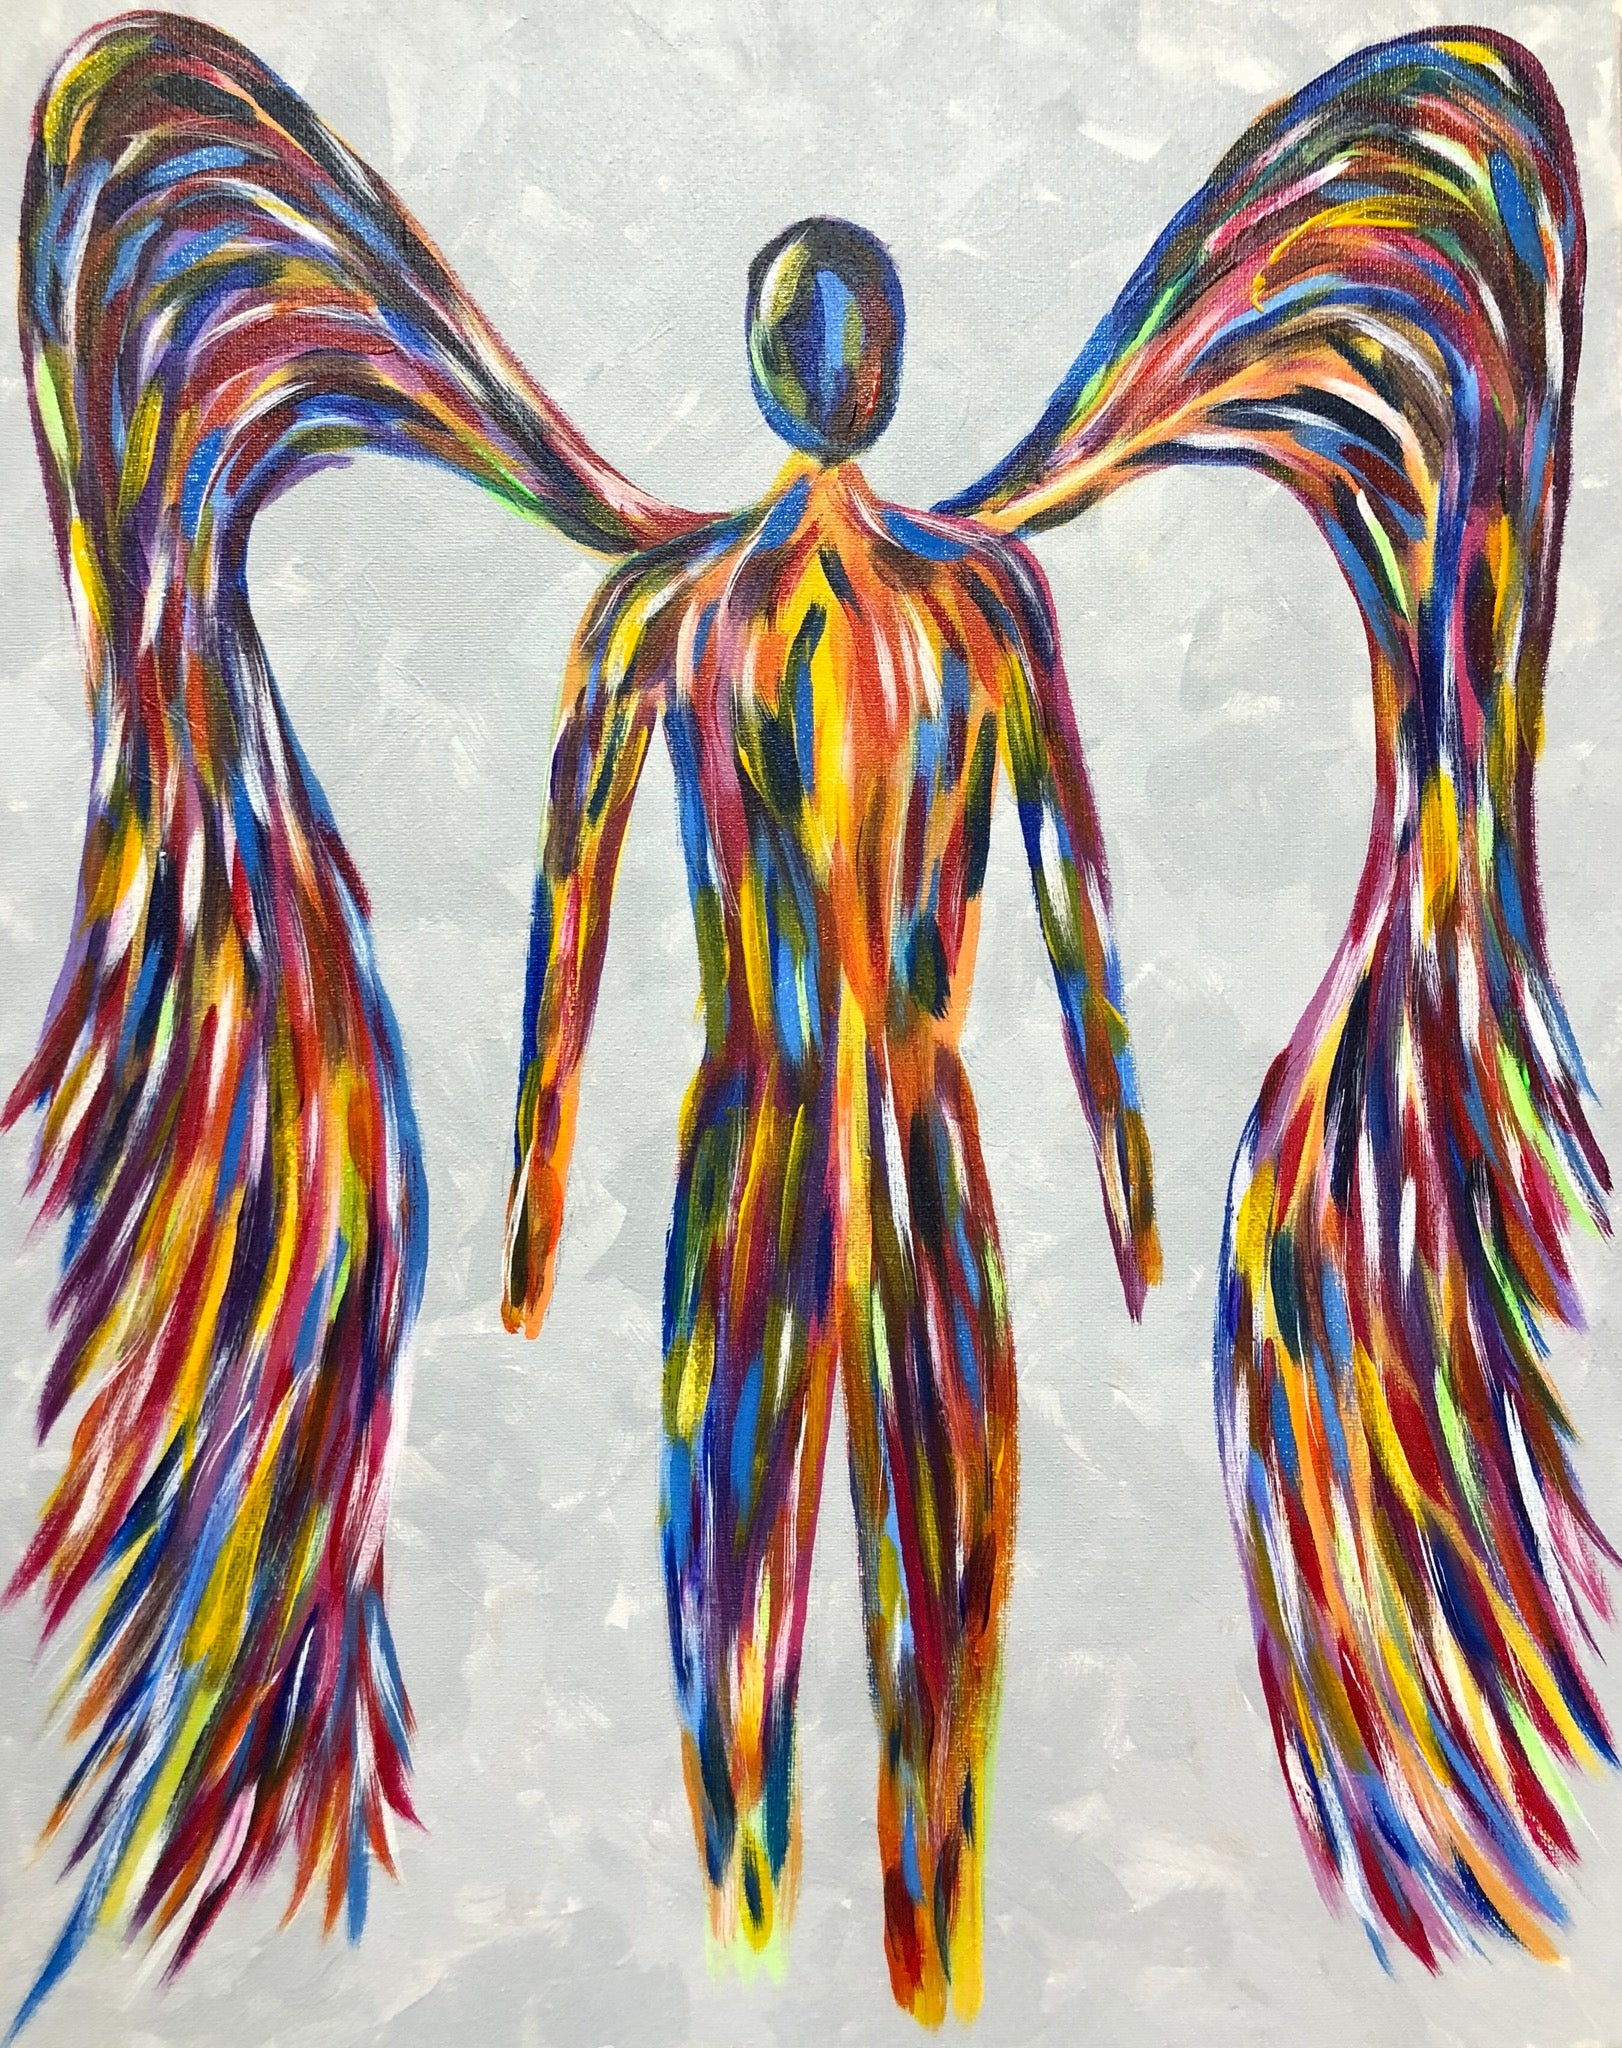 "Sat, Jan 5, 2019, 7-10pm ""Rainbow Angel"" Public Tulsa OK Paint, Wine, & Canvas Class"